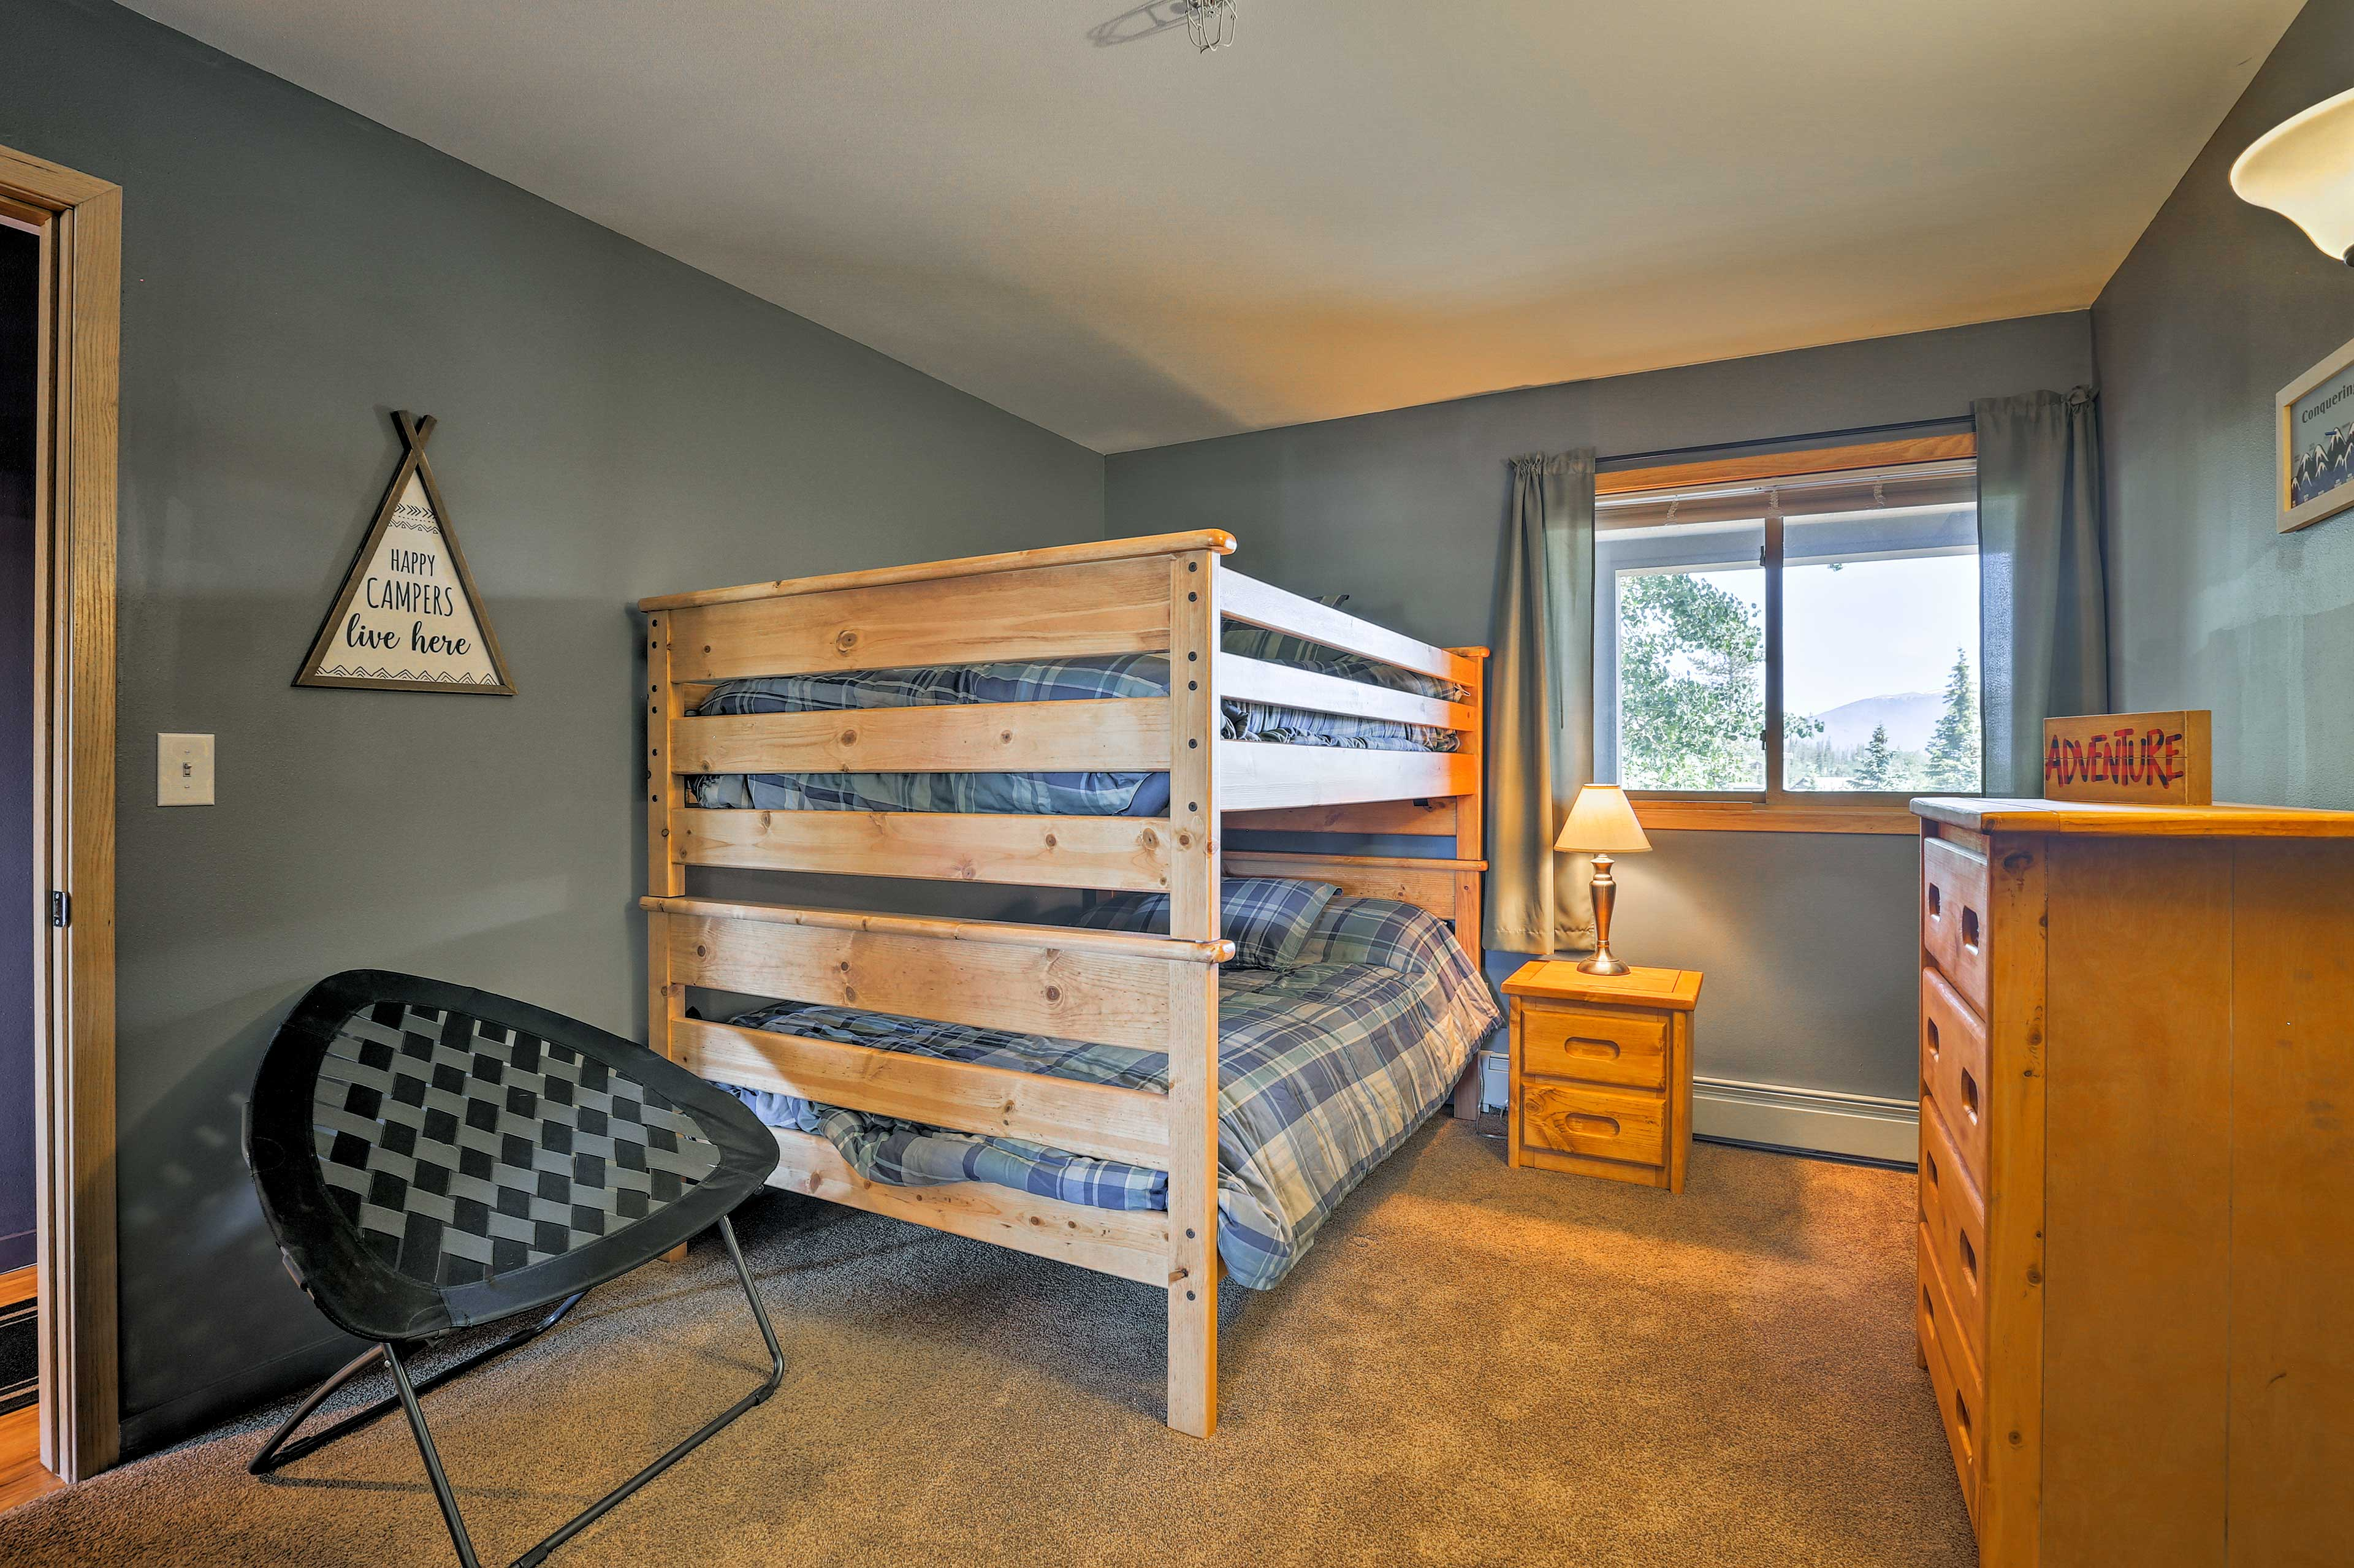 This room features a full-over-full bunk bed.